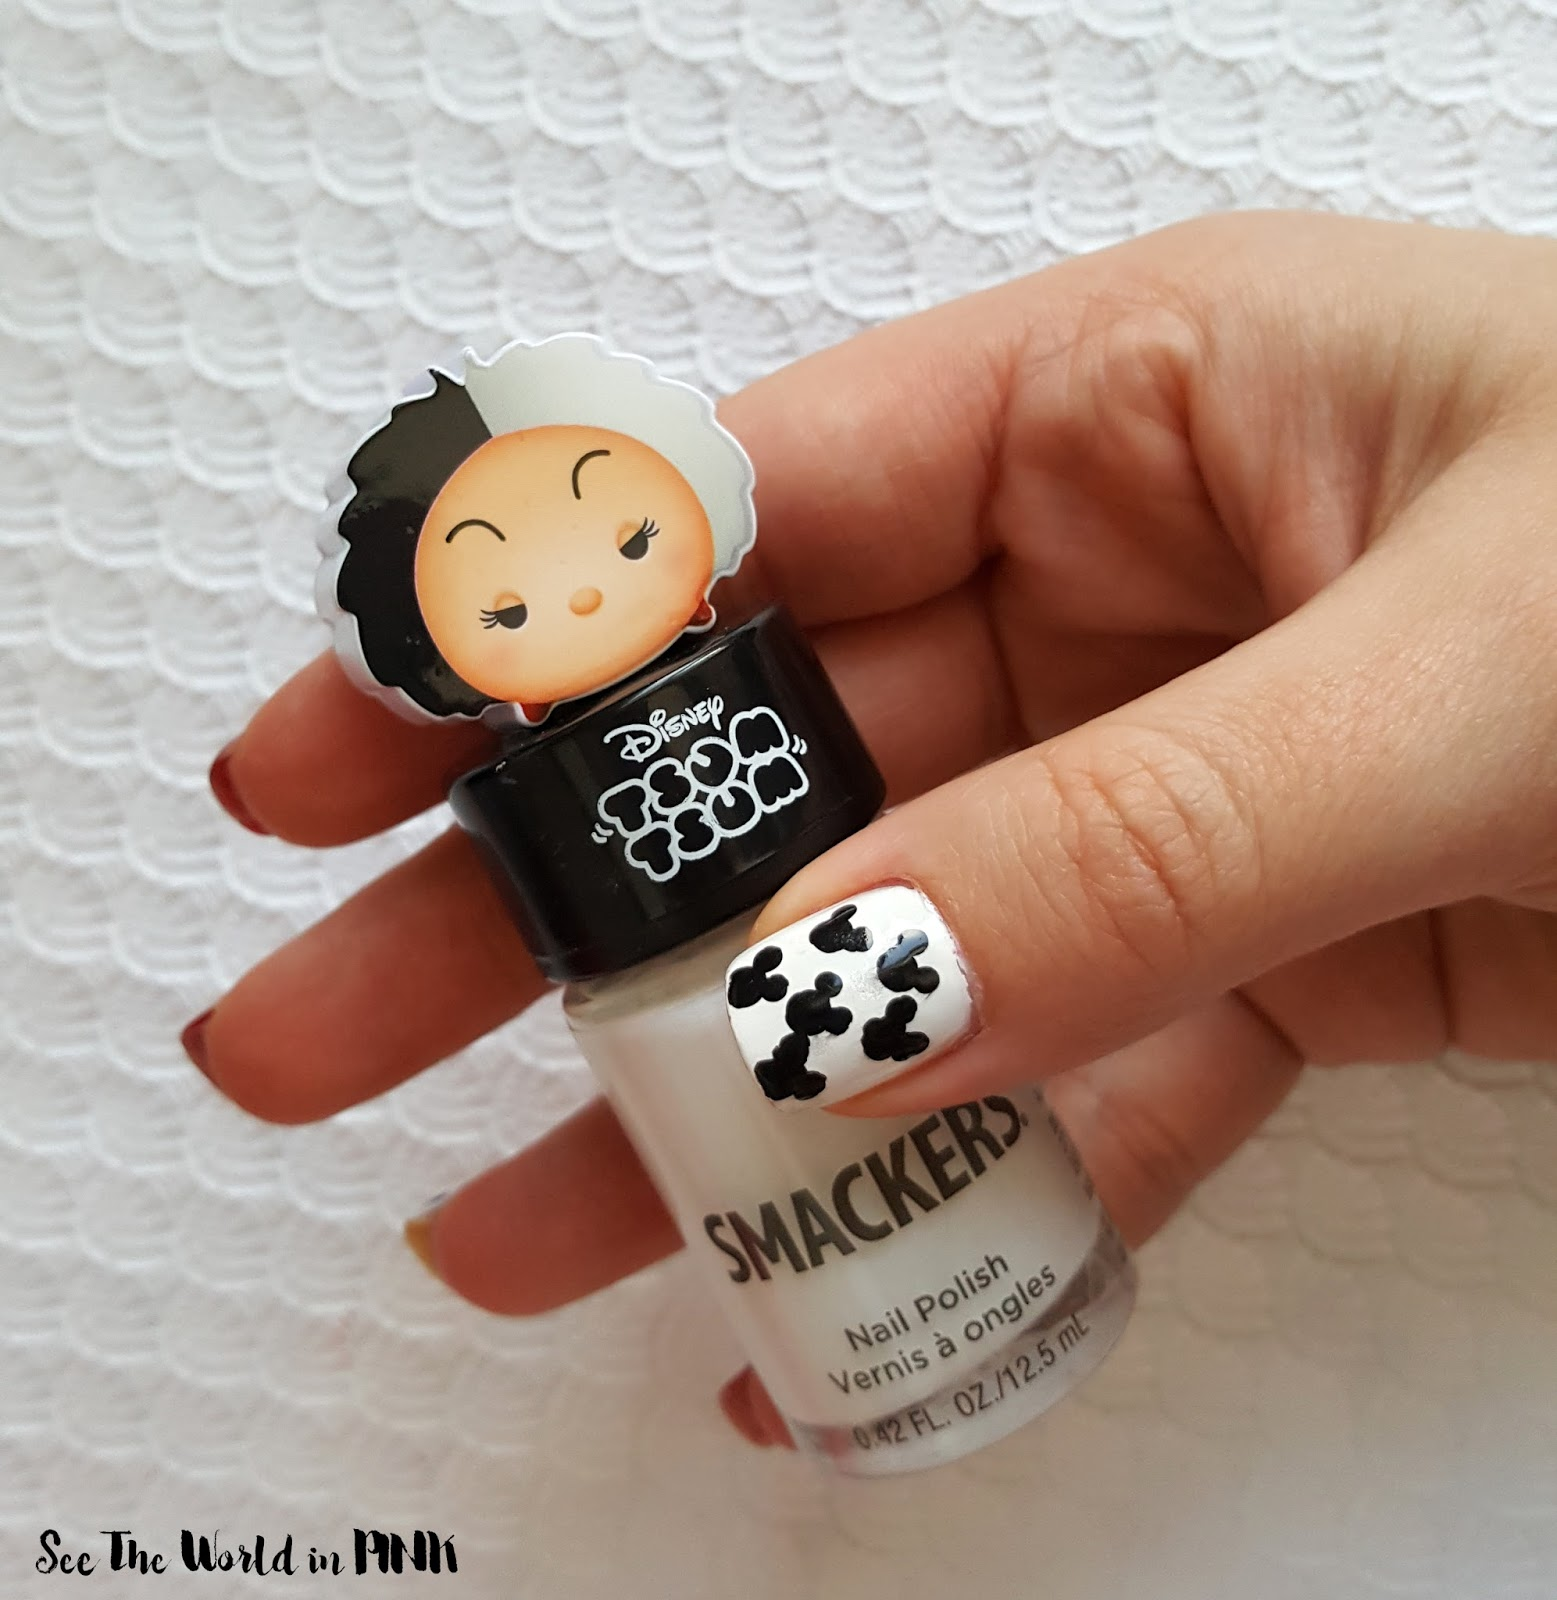 Disney Manicure Monday - Mickey Mouse Polka Dot Nail Art